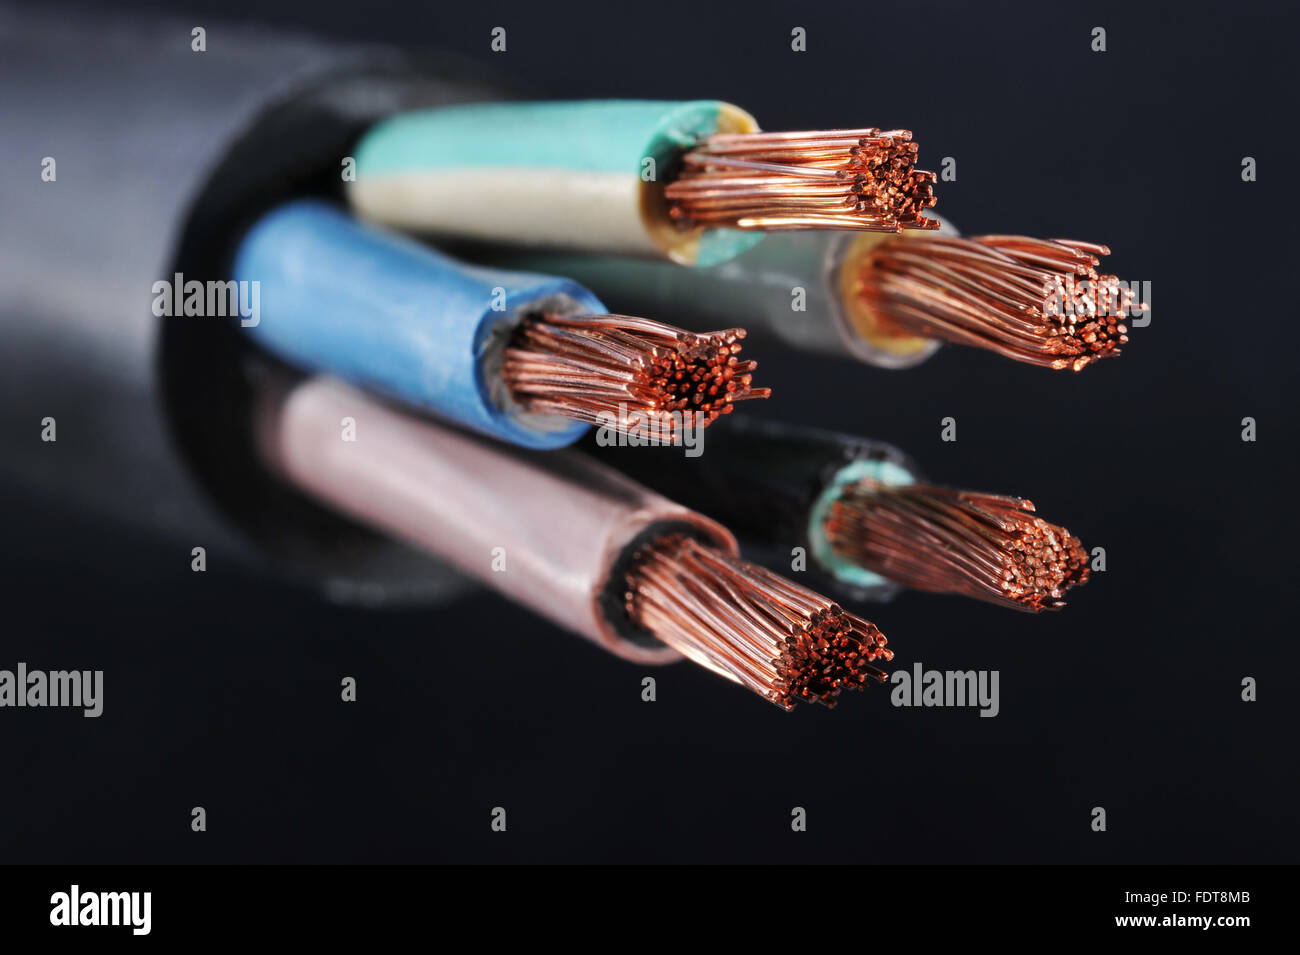 Copper Metal Wire Stockfotos & Copper Metal Wire Bilder - Seite 2 ...